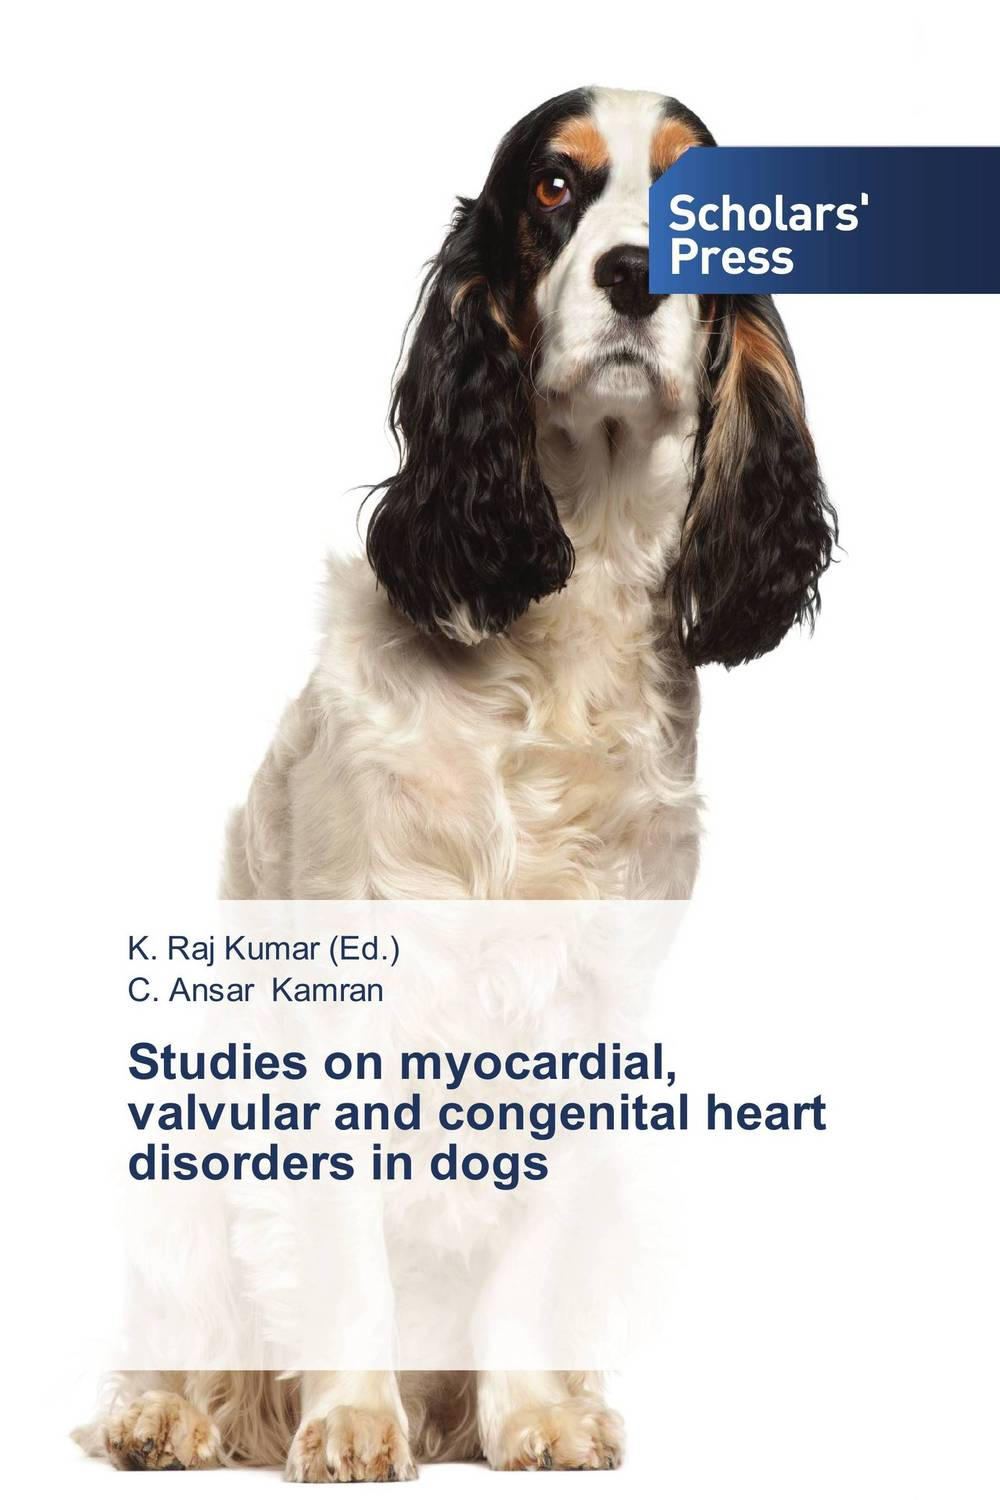 Studies on myocardial, valvular and congenital heart disorders in dogs congenital heart defects